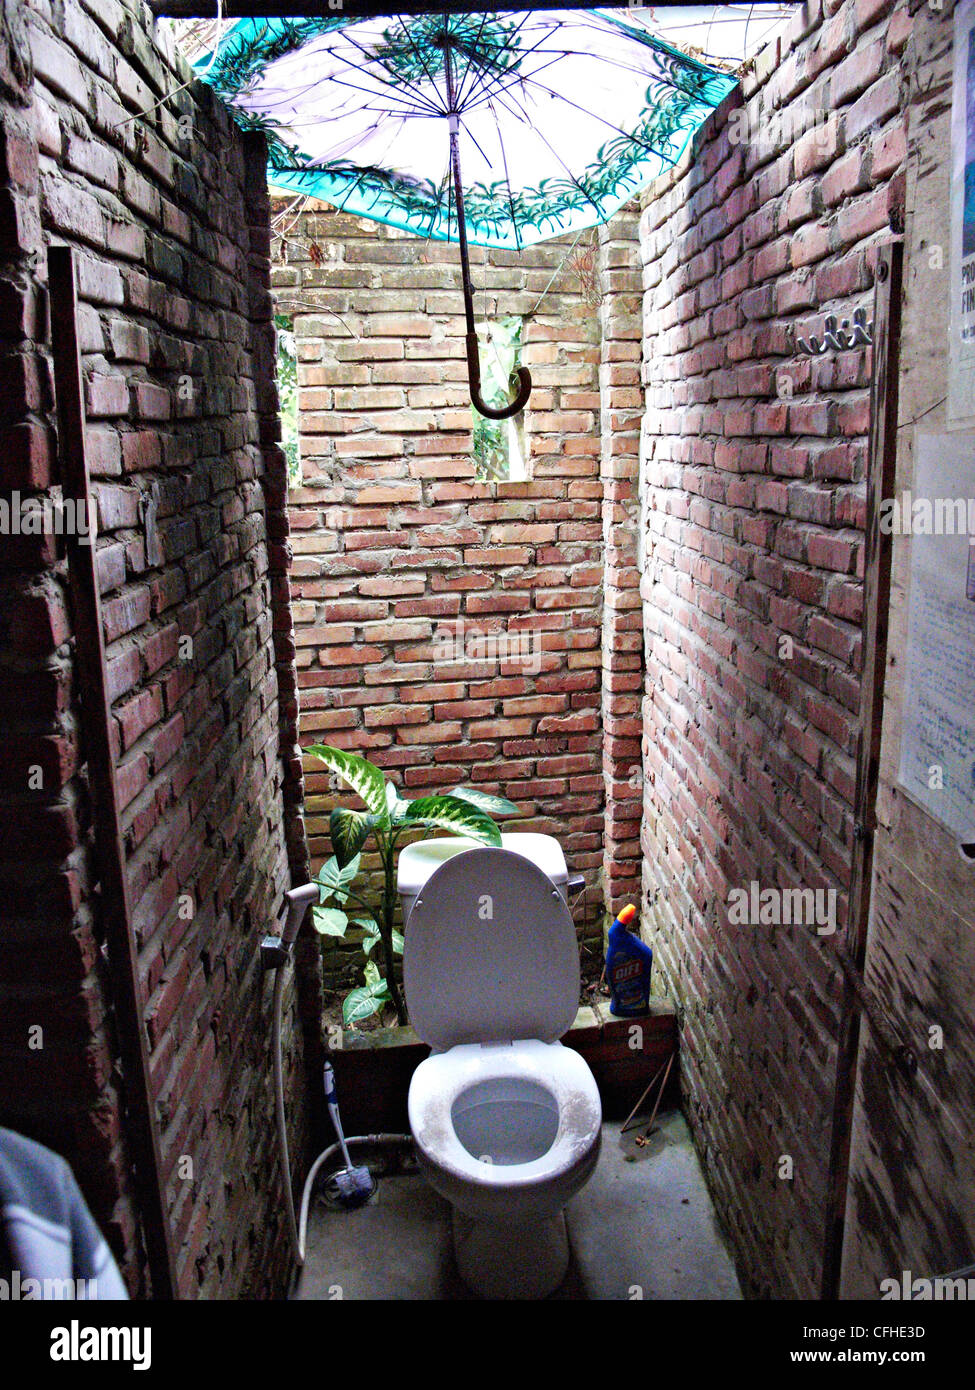 an umbrella is used as a roof in this toilet cubicle in Vietnam - Stock Image